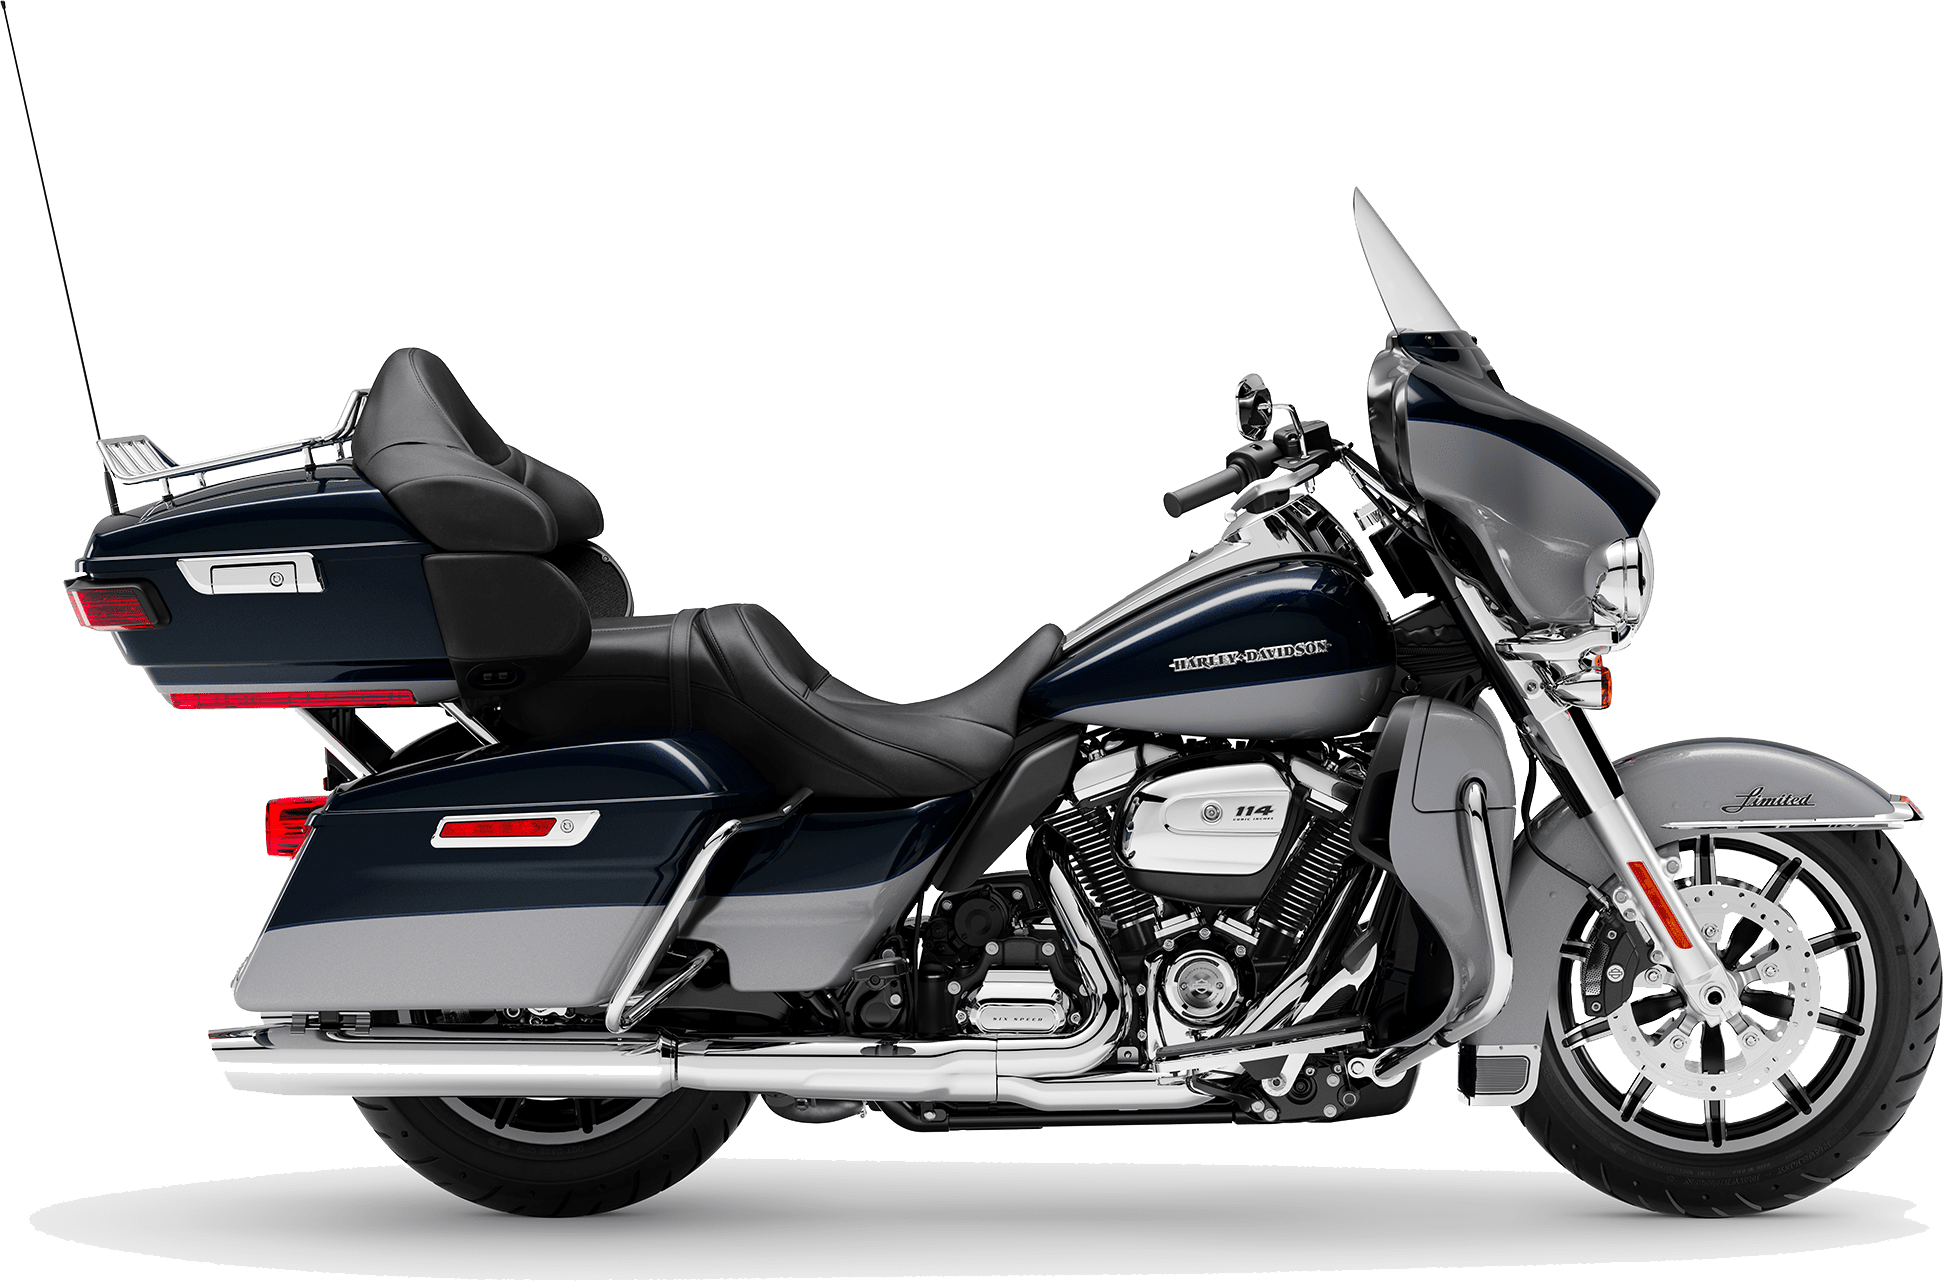 2019 Harley-Davidson H-D Touring Ultra Limited Low Midnight Blue Barracuda Silver